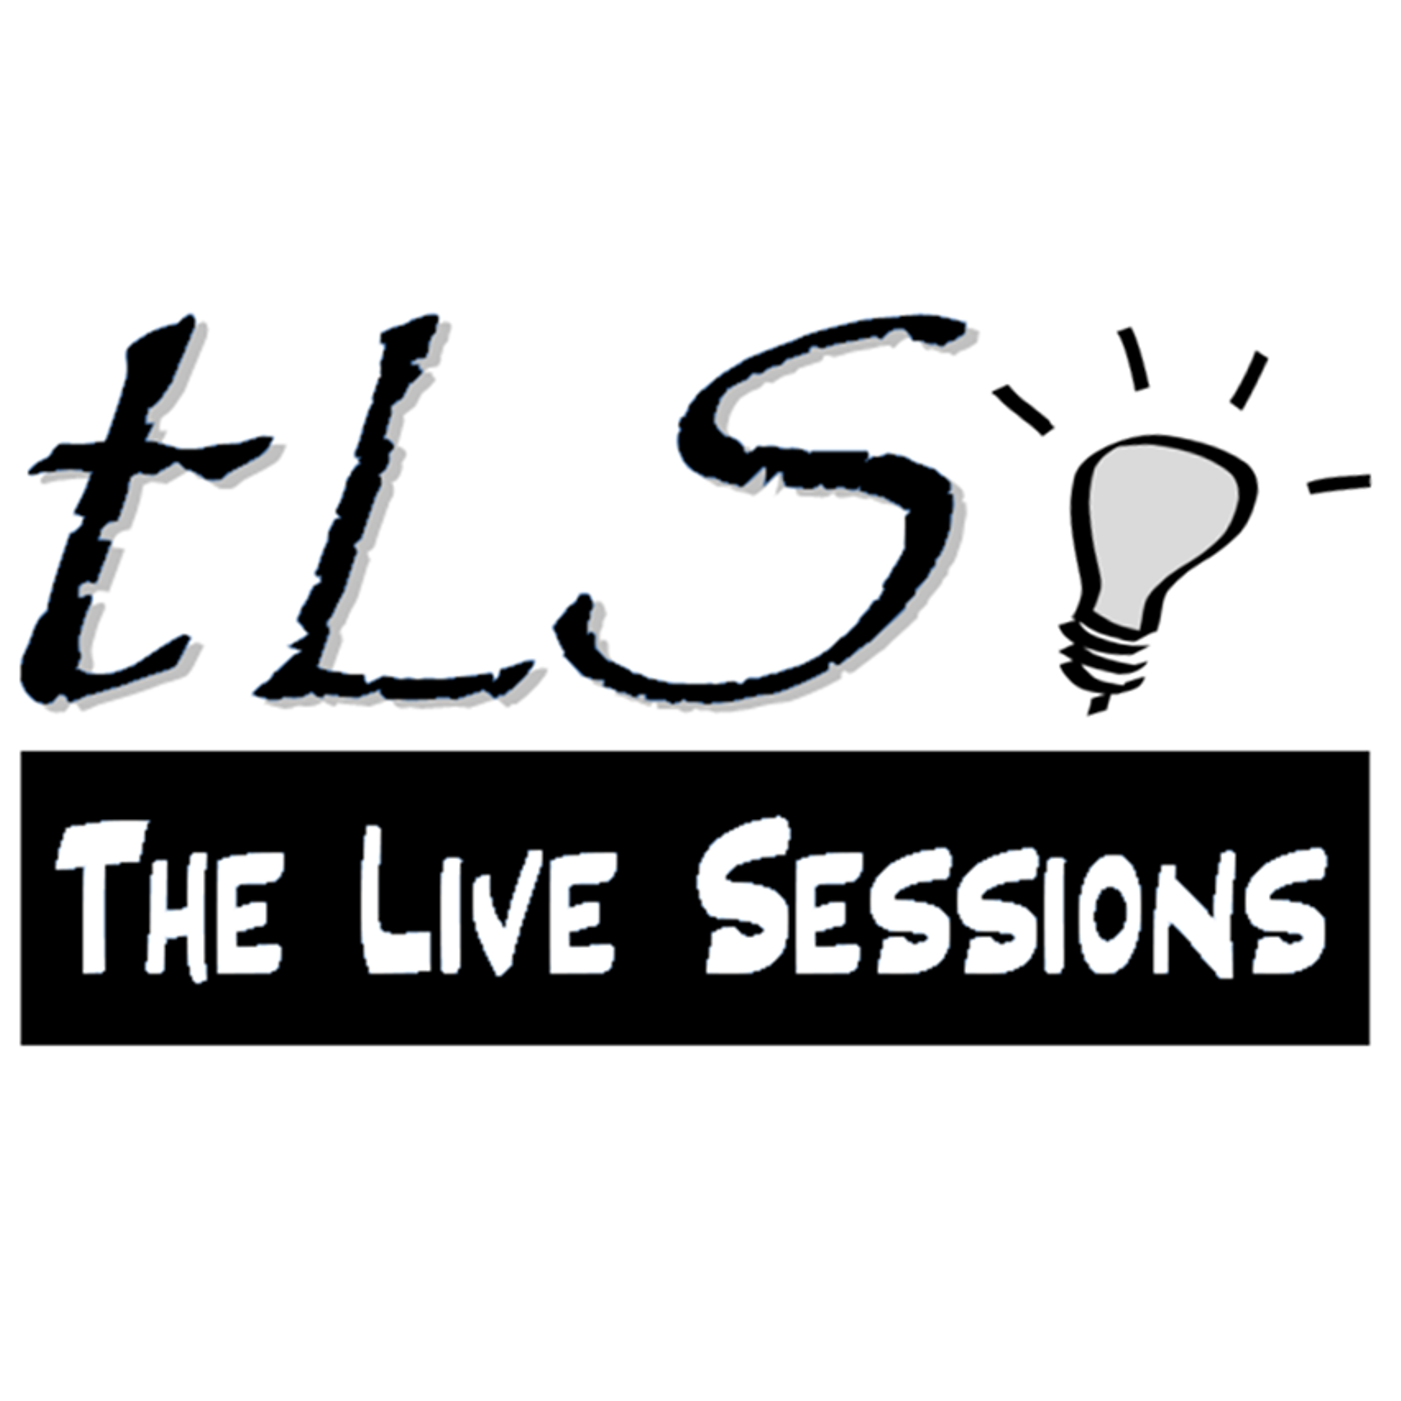 Theology - the Live Sessions (TLS)